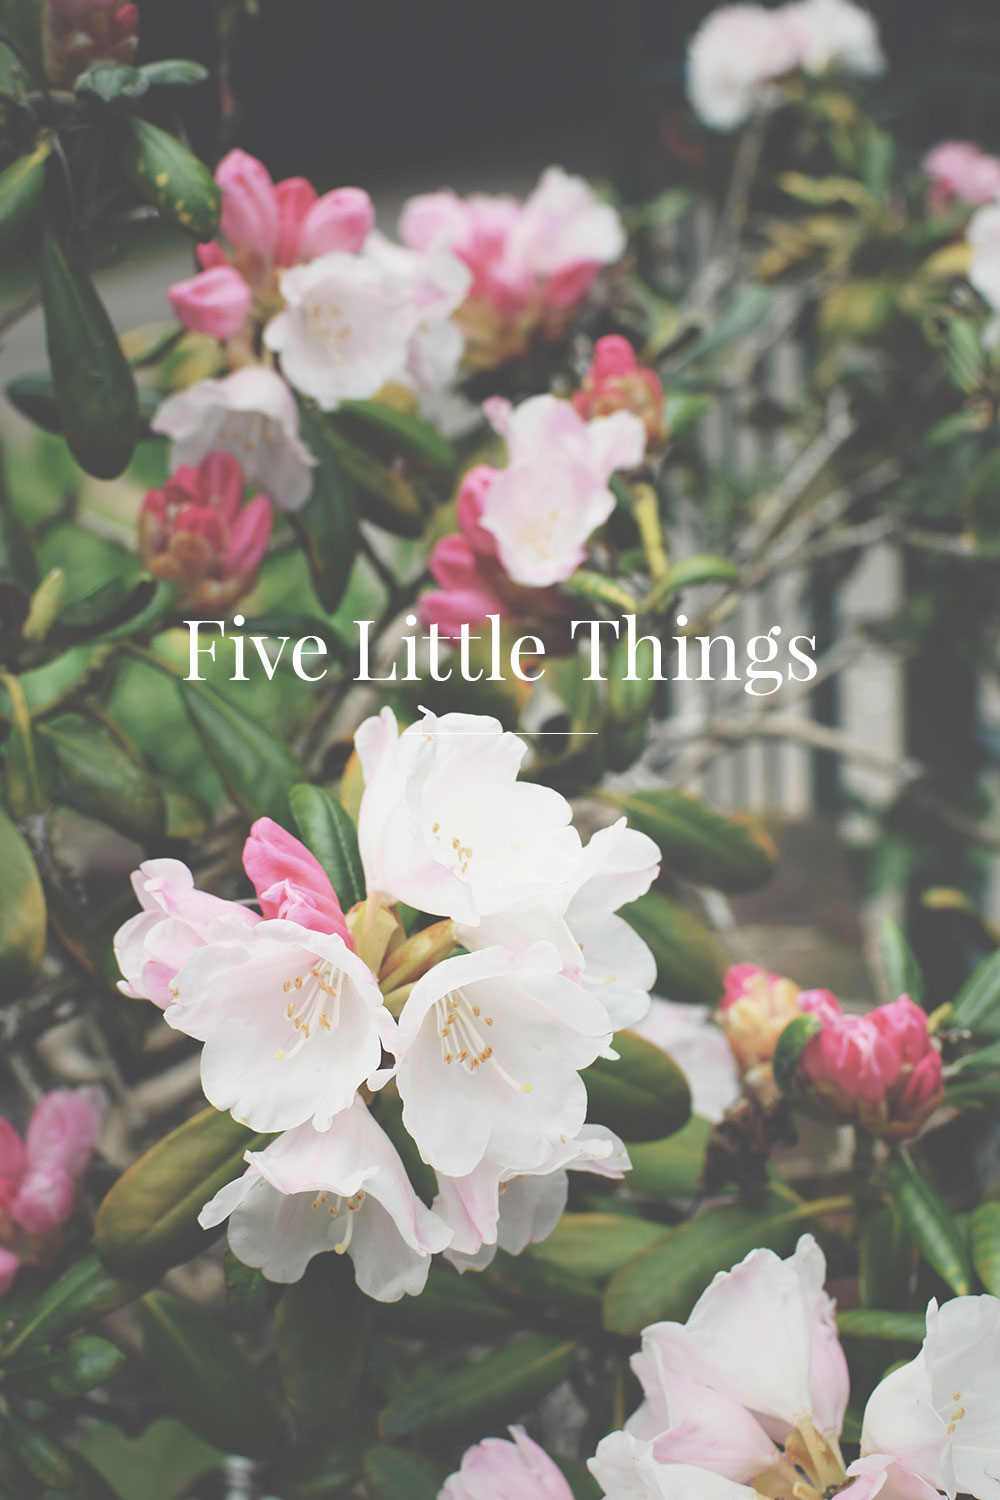 Five Little Things; A brain dump of all my thoughts - what's been happening lately, personal post